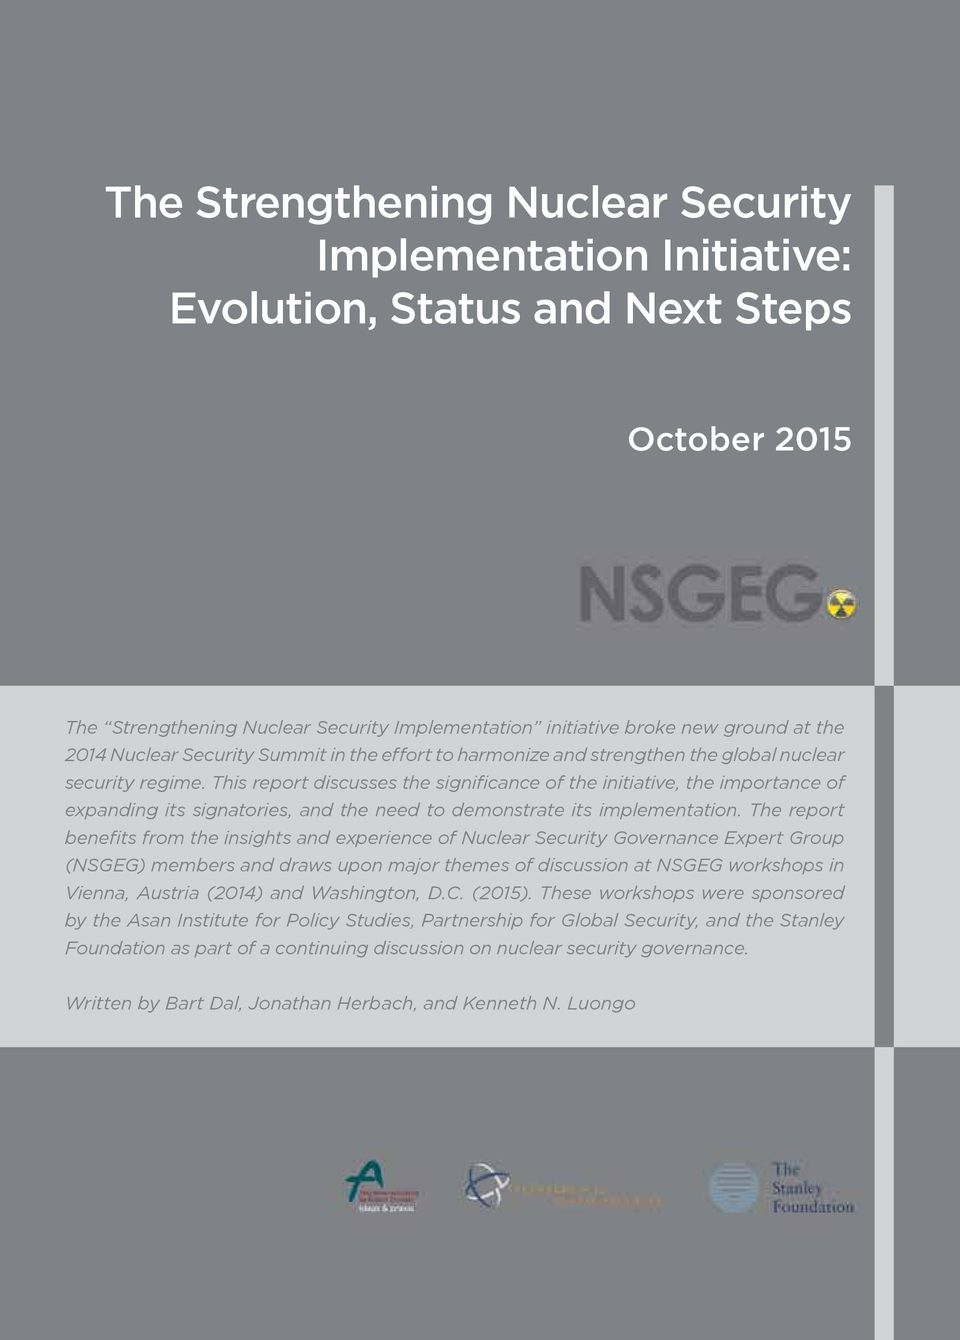 This report discusses the significance of the initiative, the importance of expanding its signatories, and the need to demonstrate its implementation.